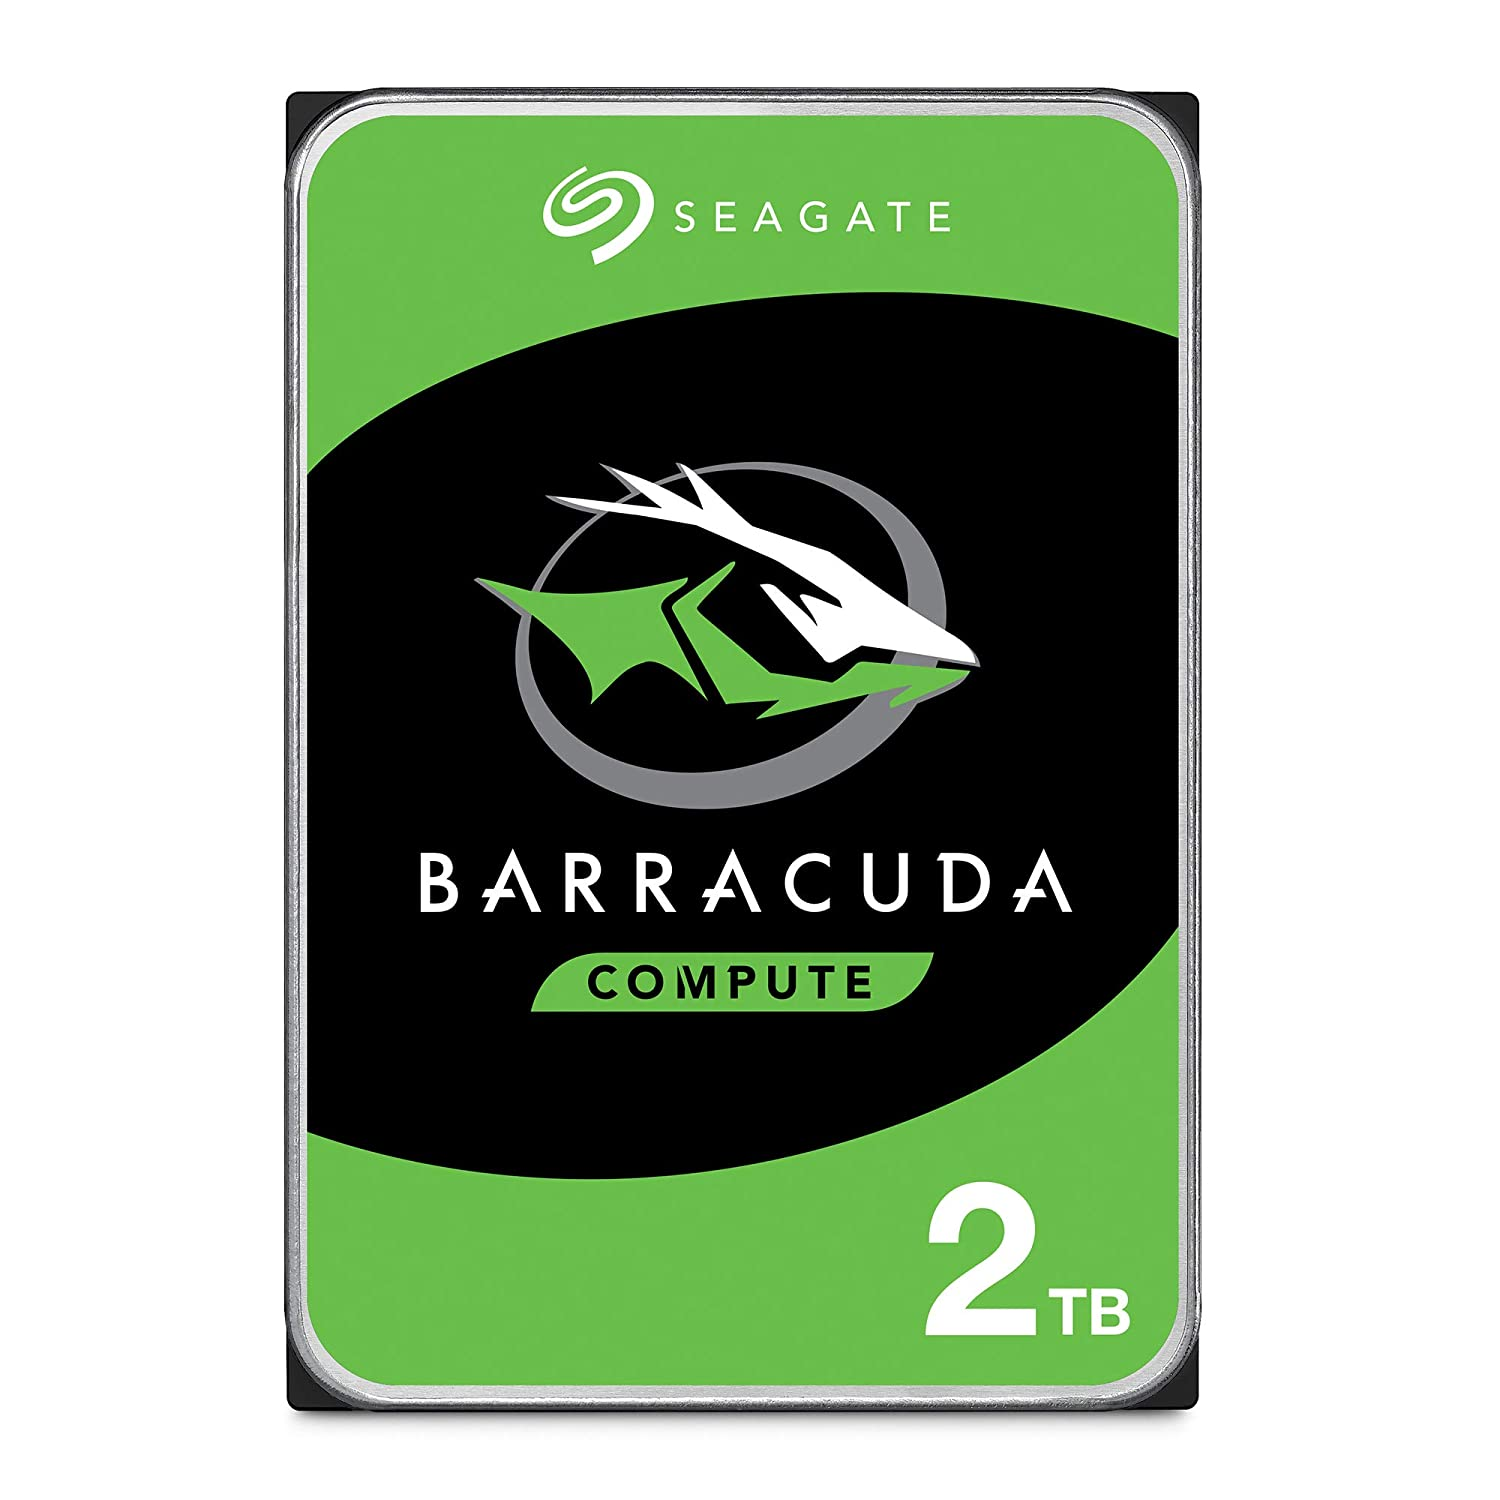 [Apply coupon] Seagate Barracuda 2TB HDD (ST2000DM005)